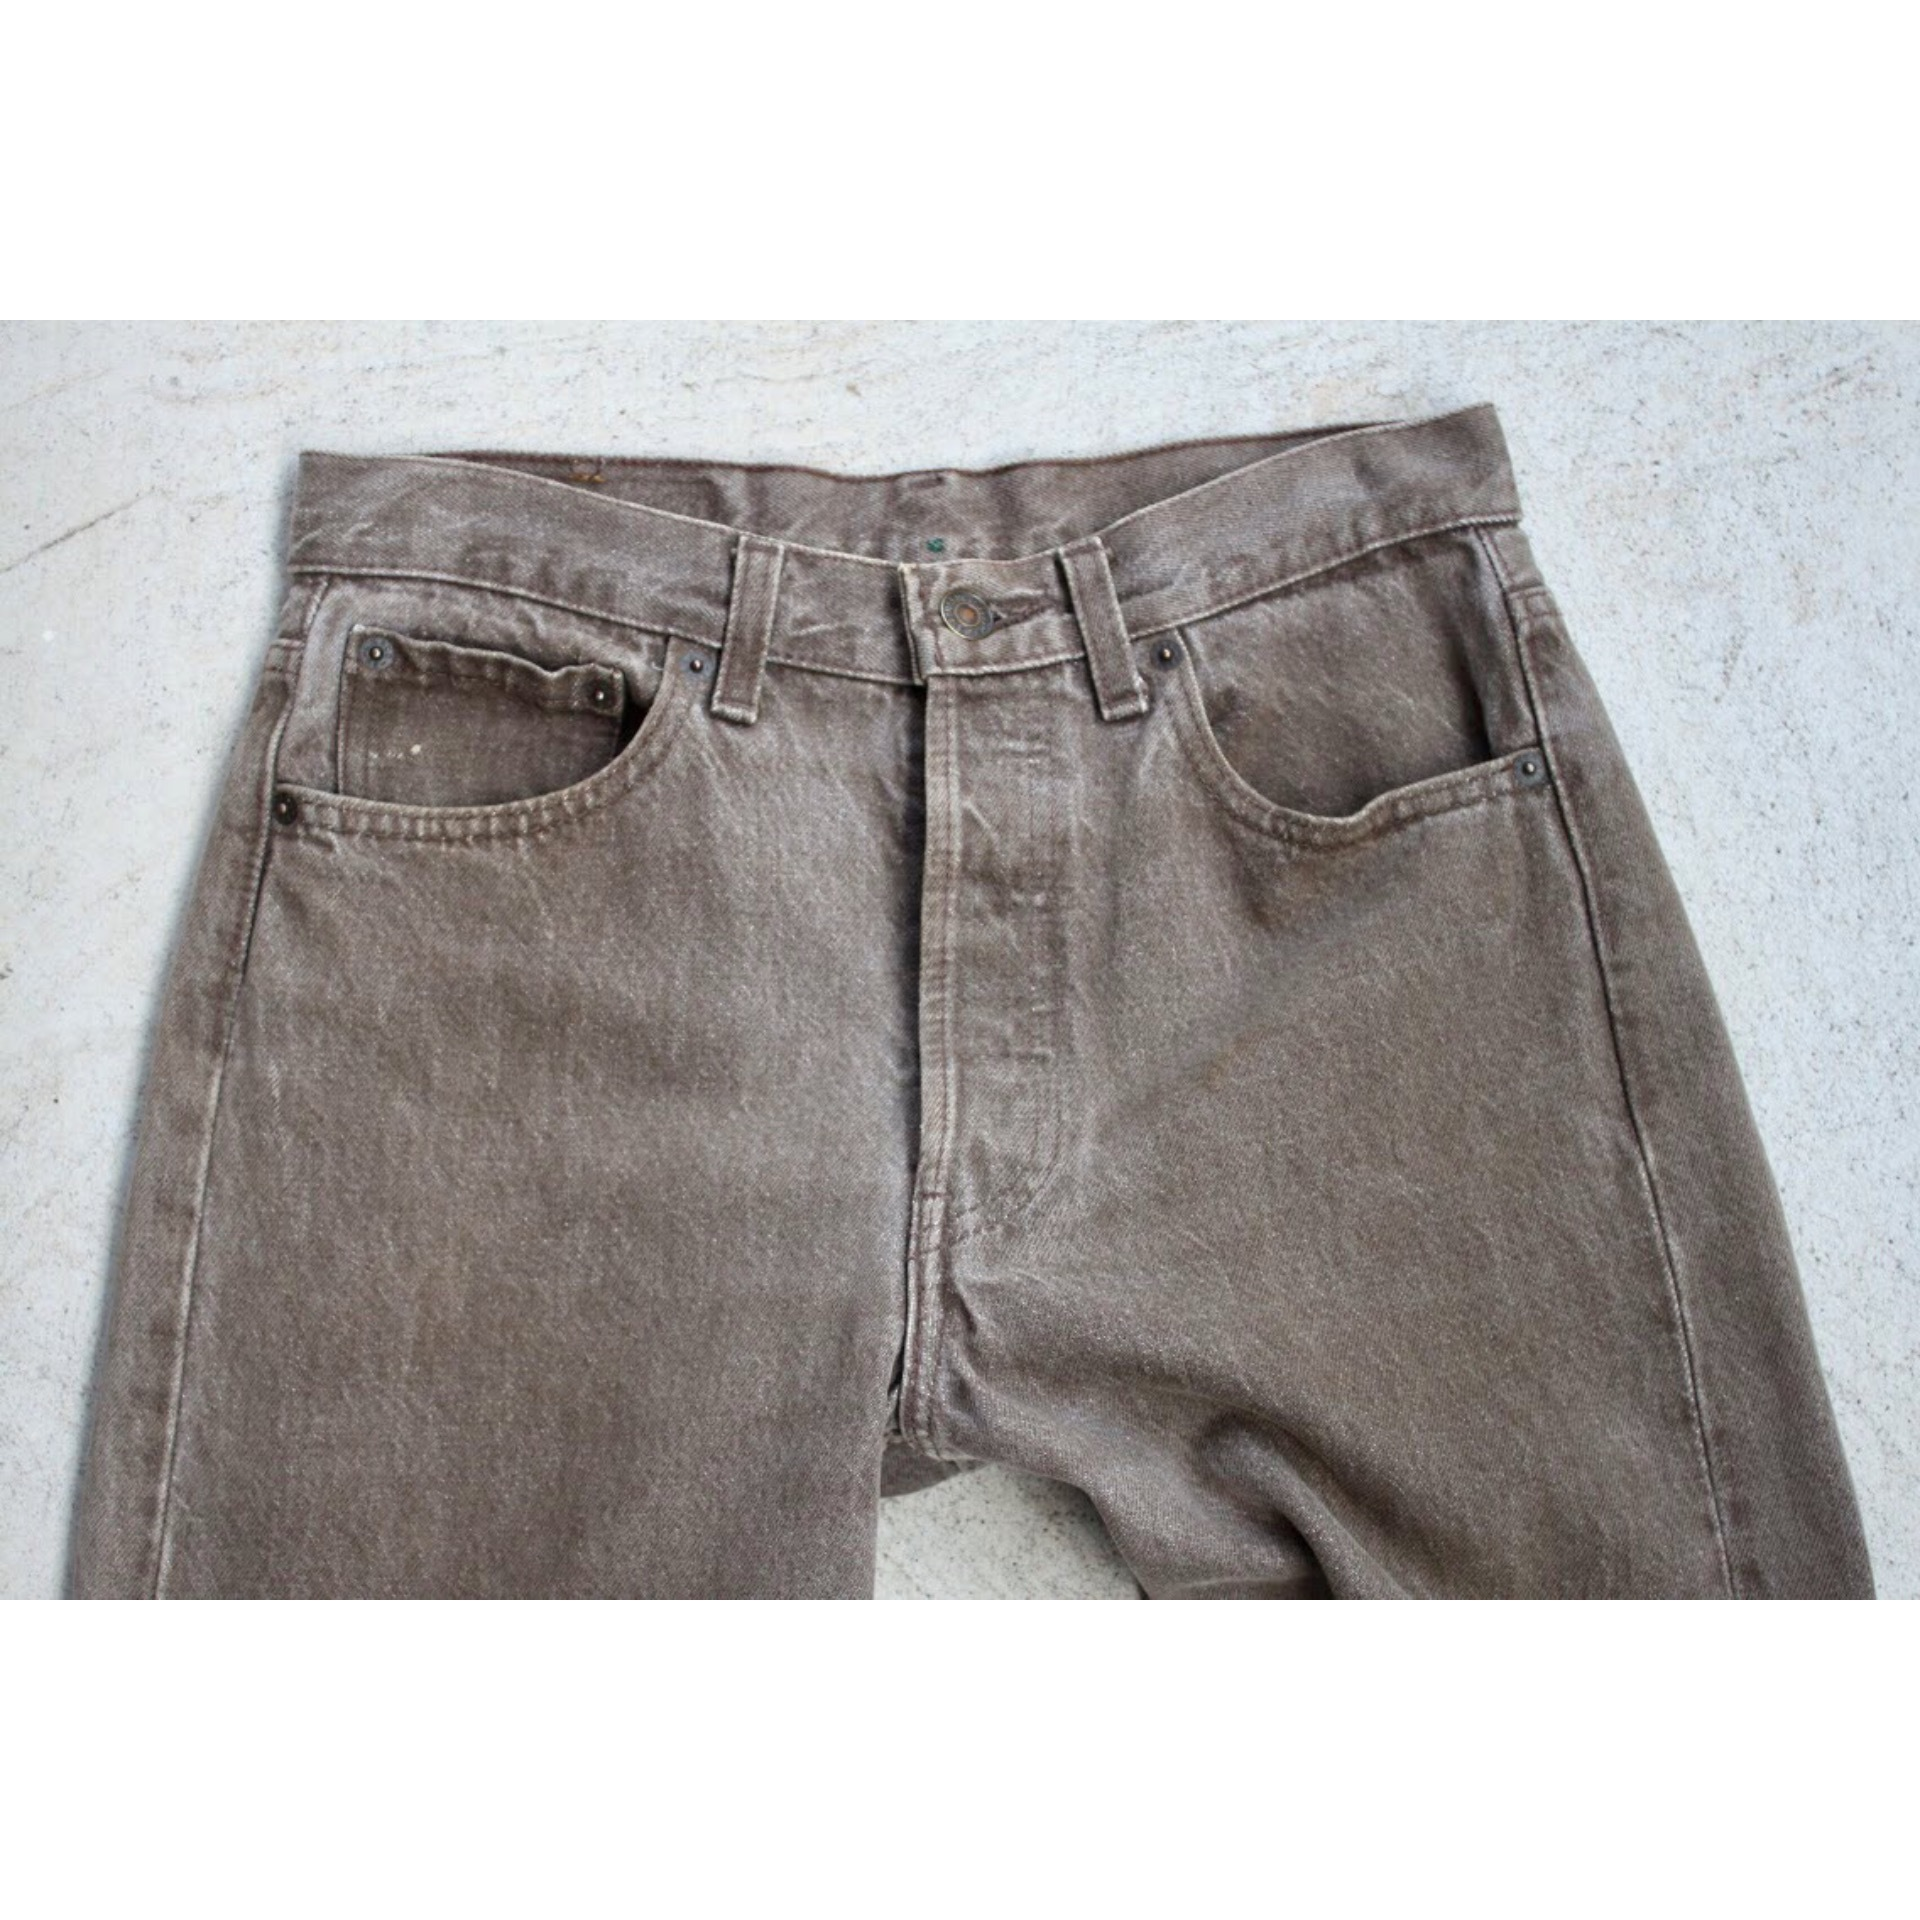 Vintage Levis 501 color pants